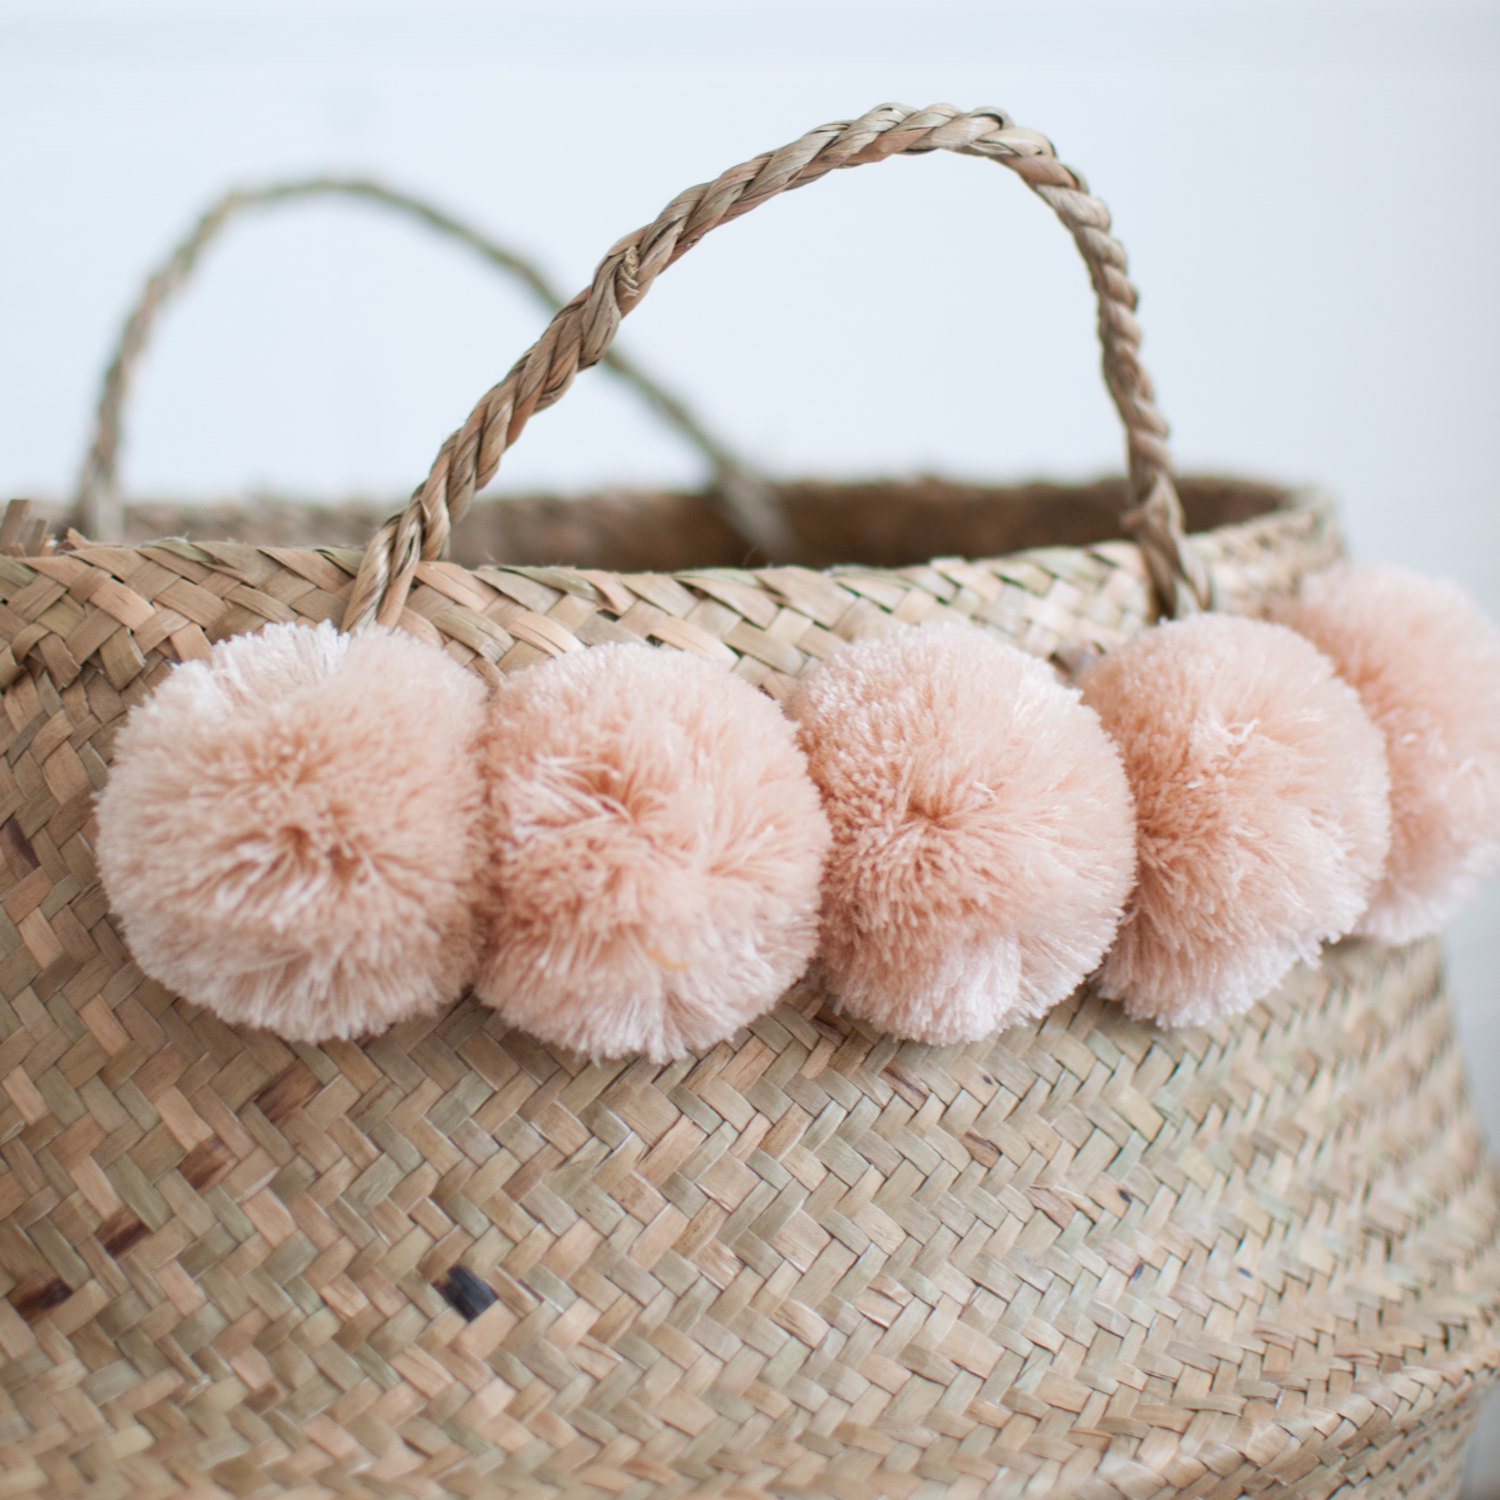 Seagrass basket with blush pom poms from Xinh & Co.